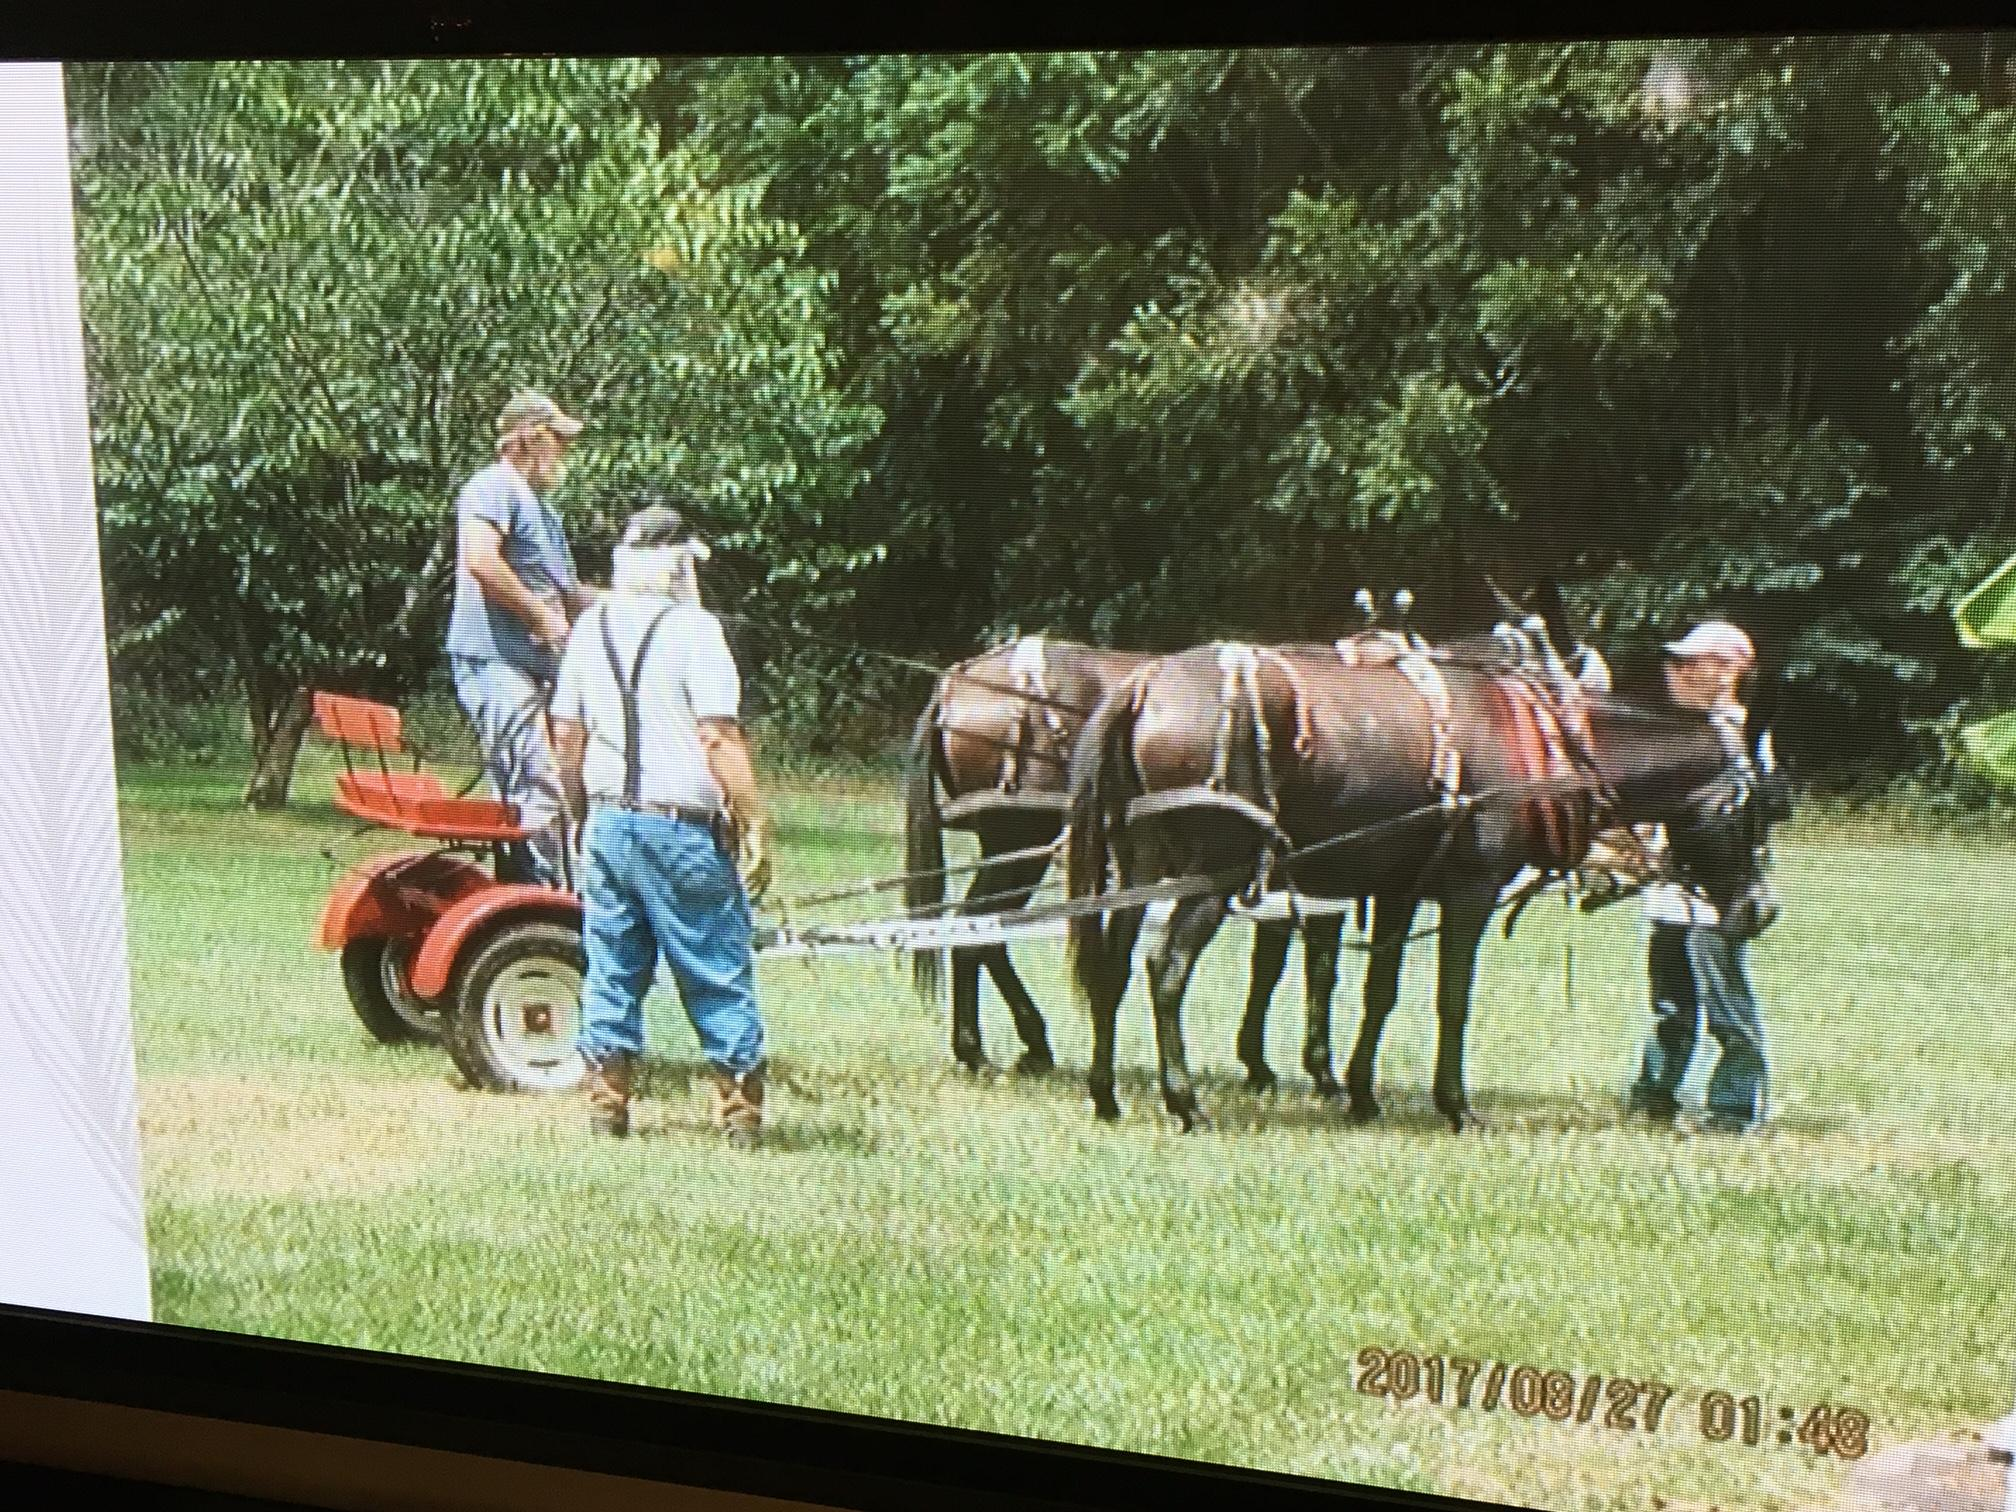 Boney Summey, one of the victims in a September wagon train crash in Haywood County, was laid to rest Friday afternoon. (Photo credit: Summey family)